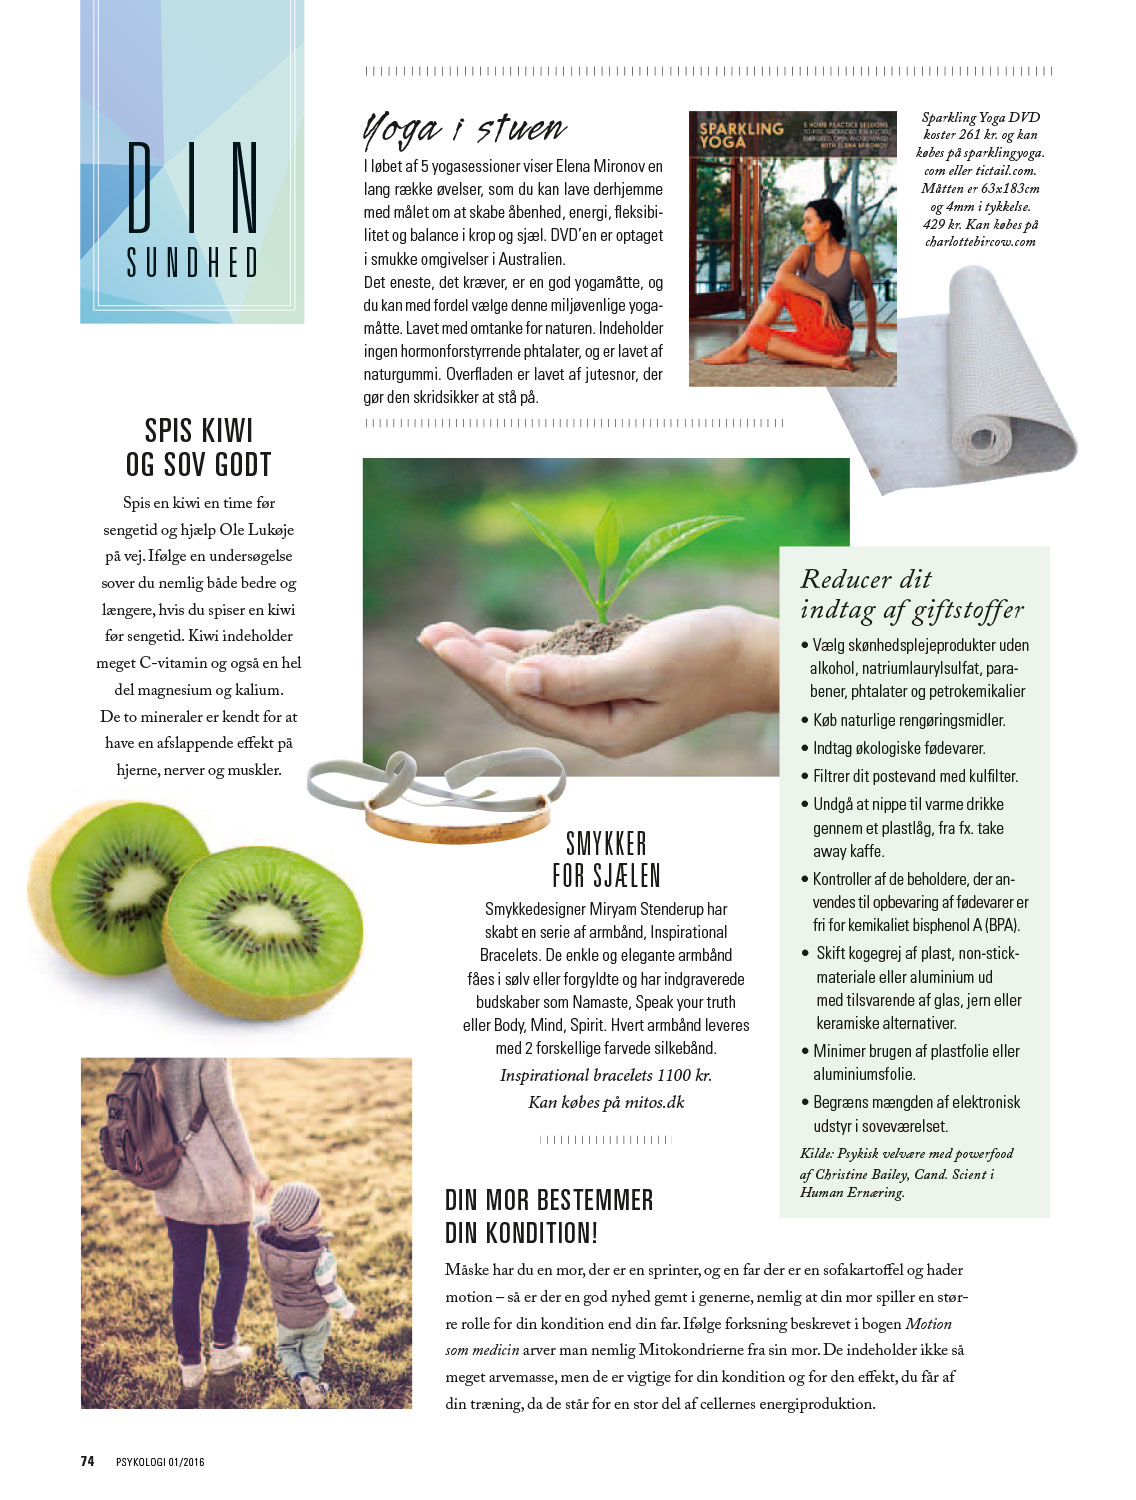 17-find-the-right-page-Sparkling-yoga-5.jpg